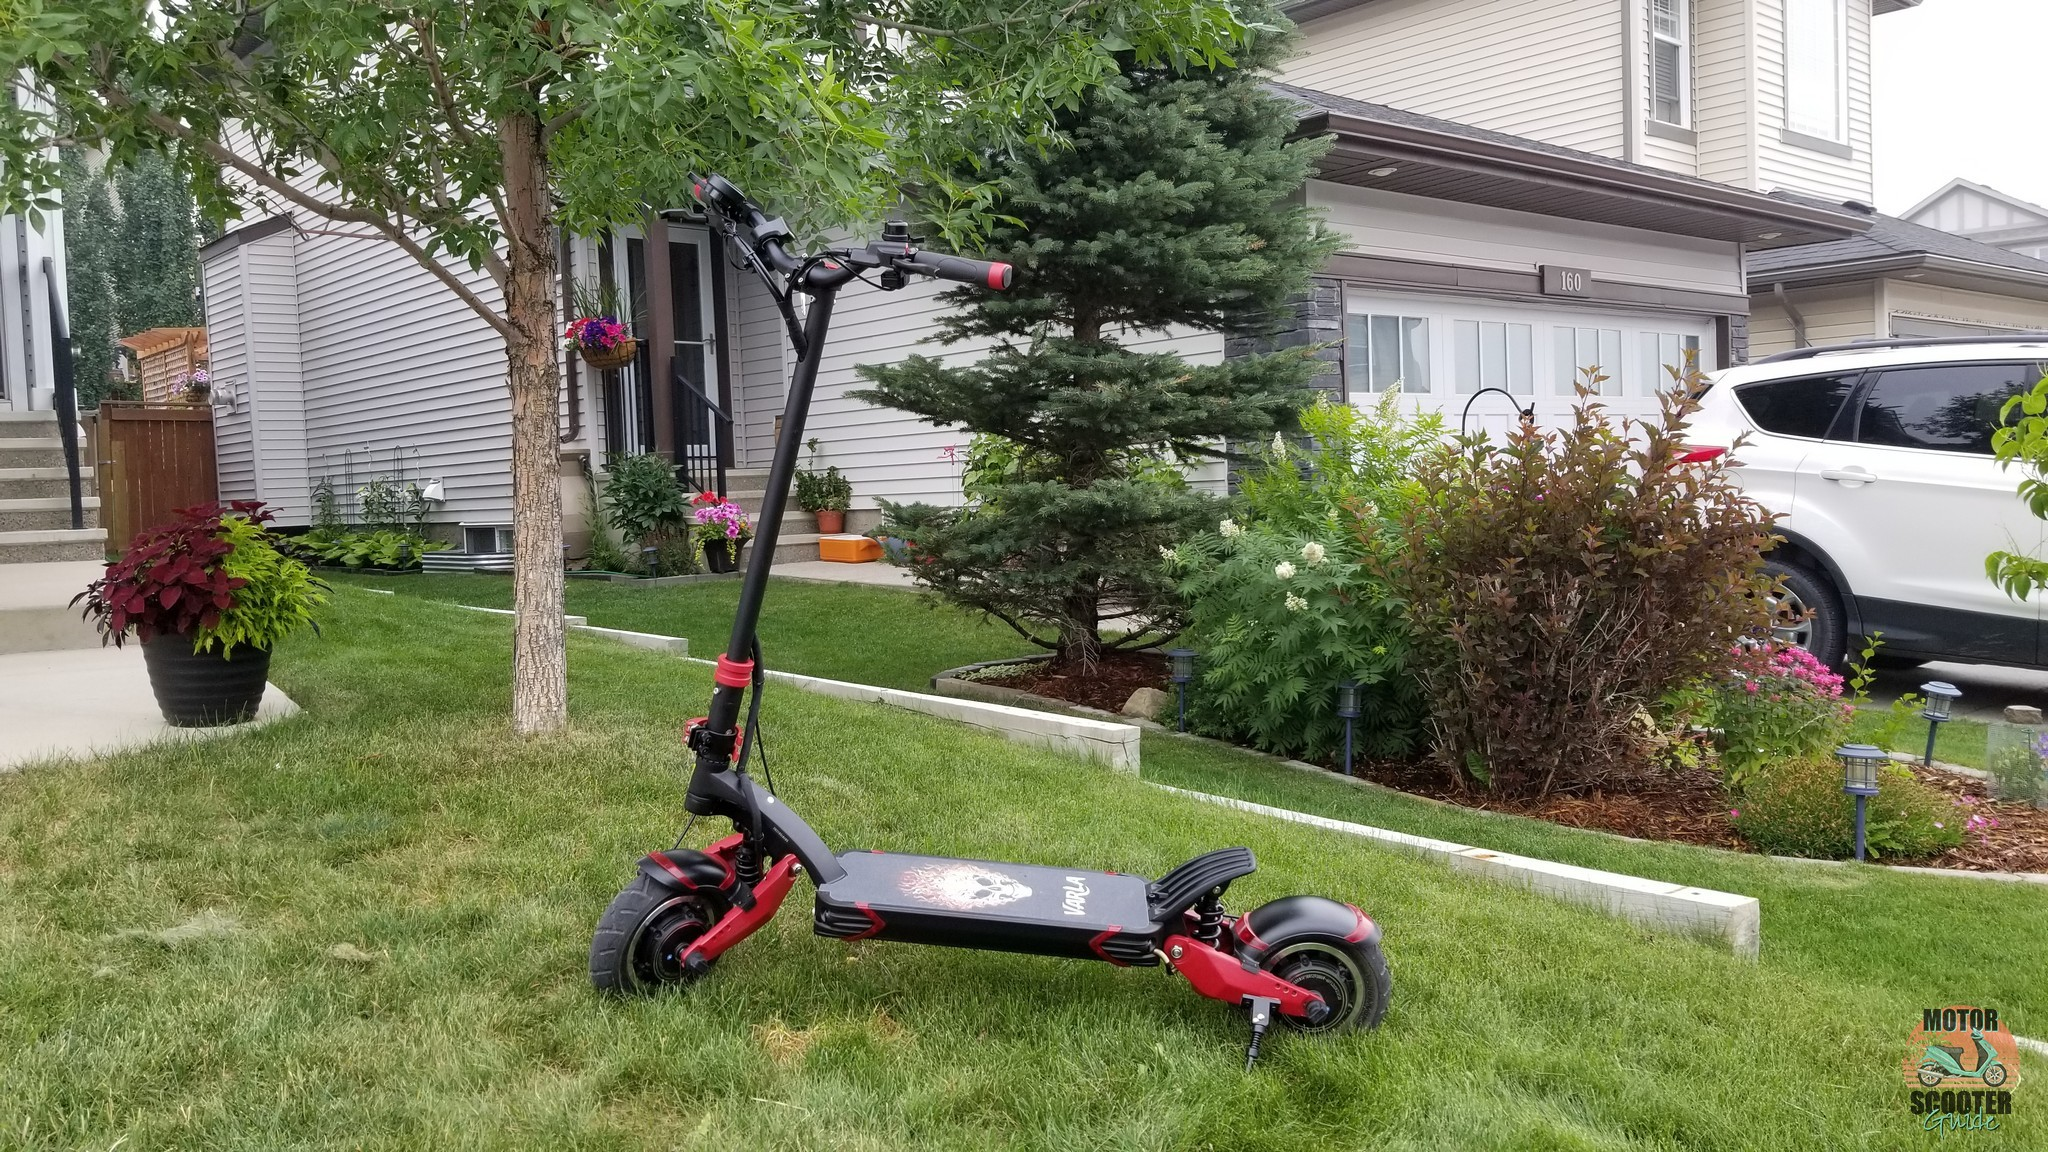 Fully assembled Varla Eagle One on front lawn